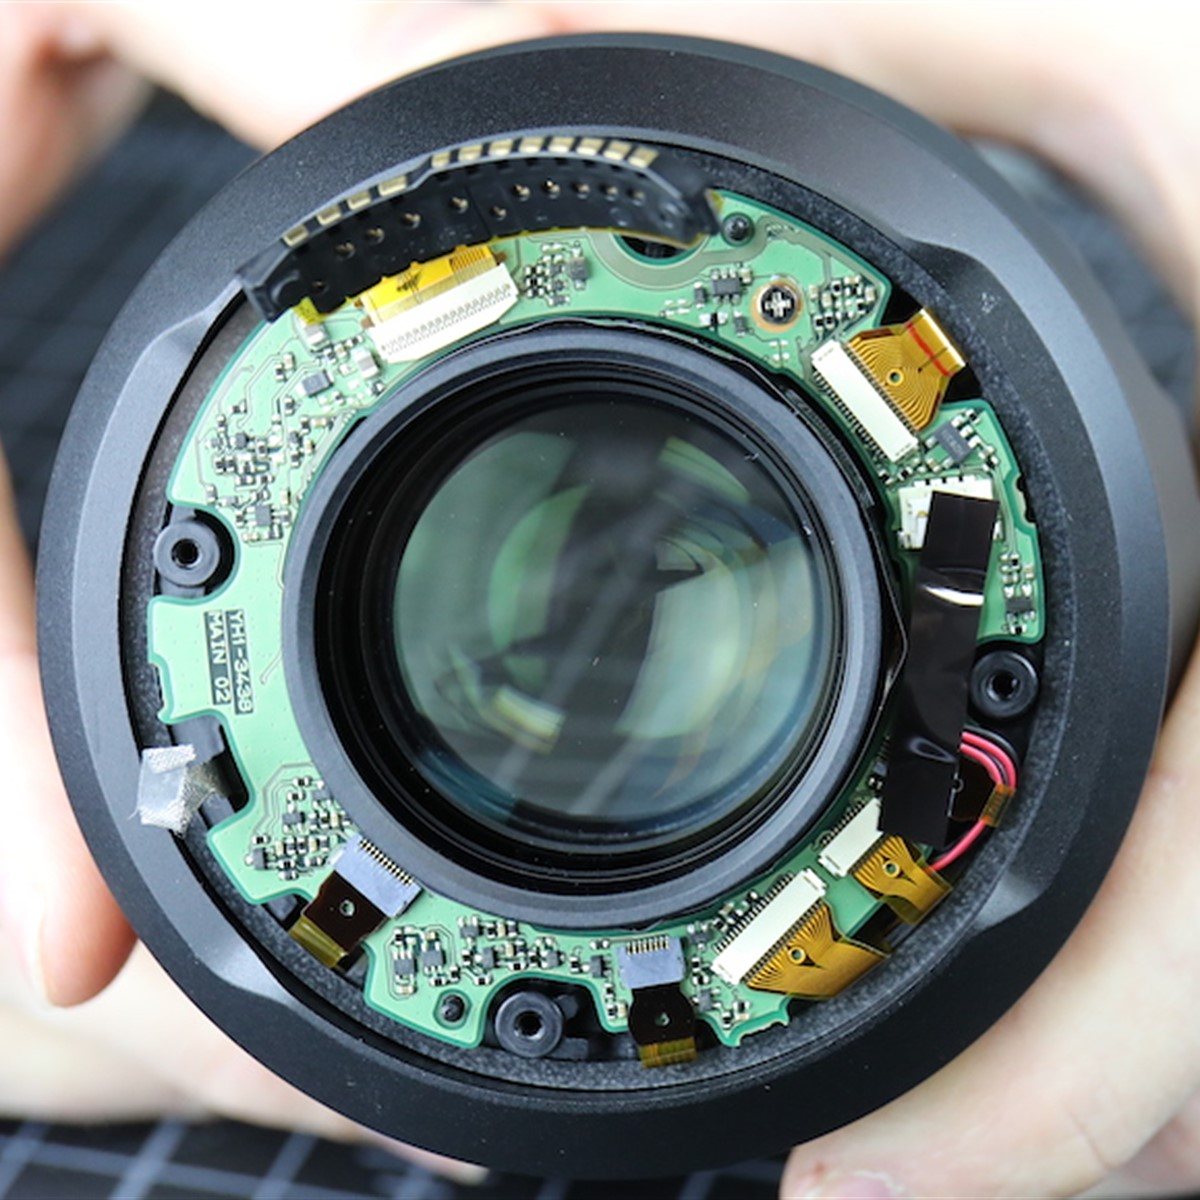 Lensrentals Tears Down Canons 50mm F12 Rf Lens To Reveal New Snap Circuits Repair Haha Bird Optics Tech And Surprises Digital Photography Review